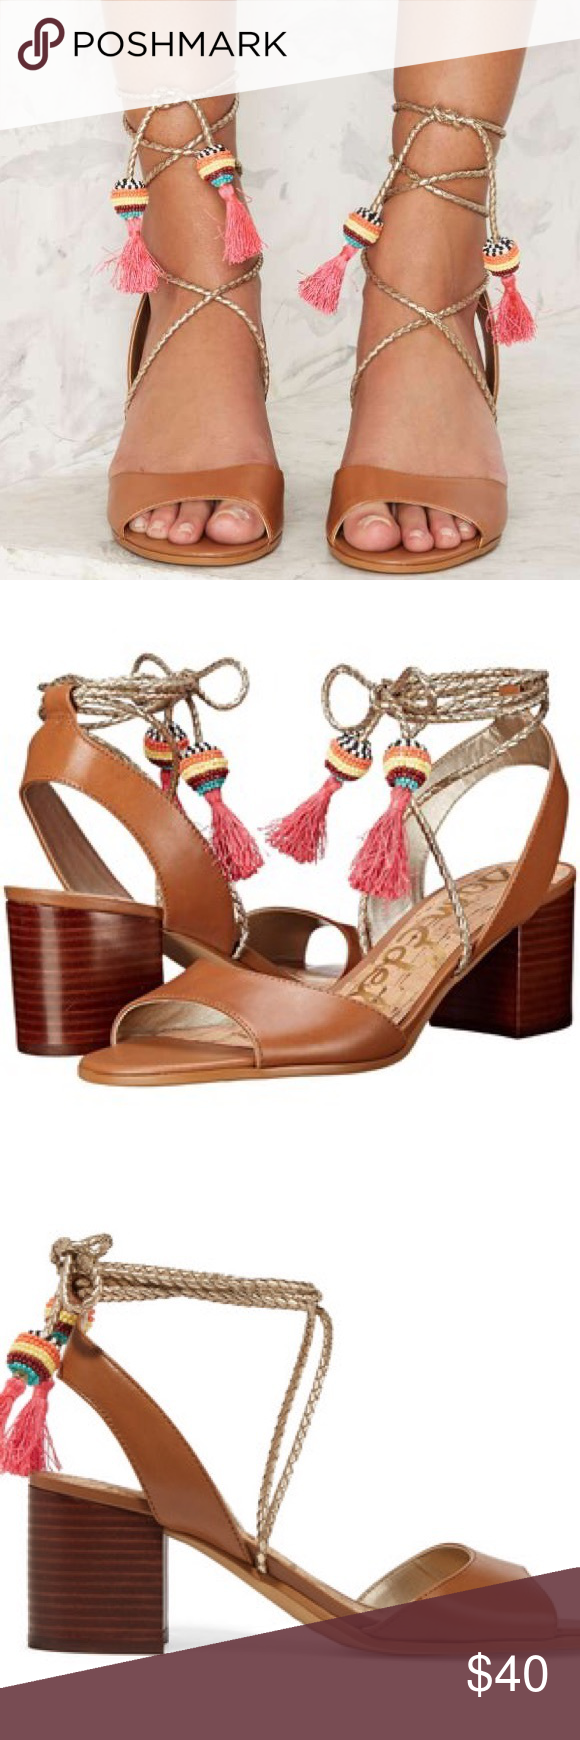 069be51a768a Sam Edelman Shani Sandal Size 8 Add these block heel sandals to your  collection for the